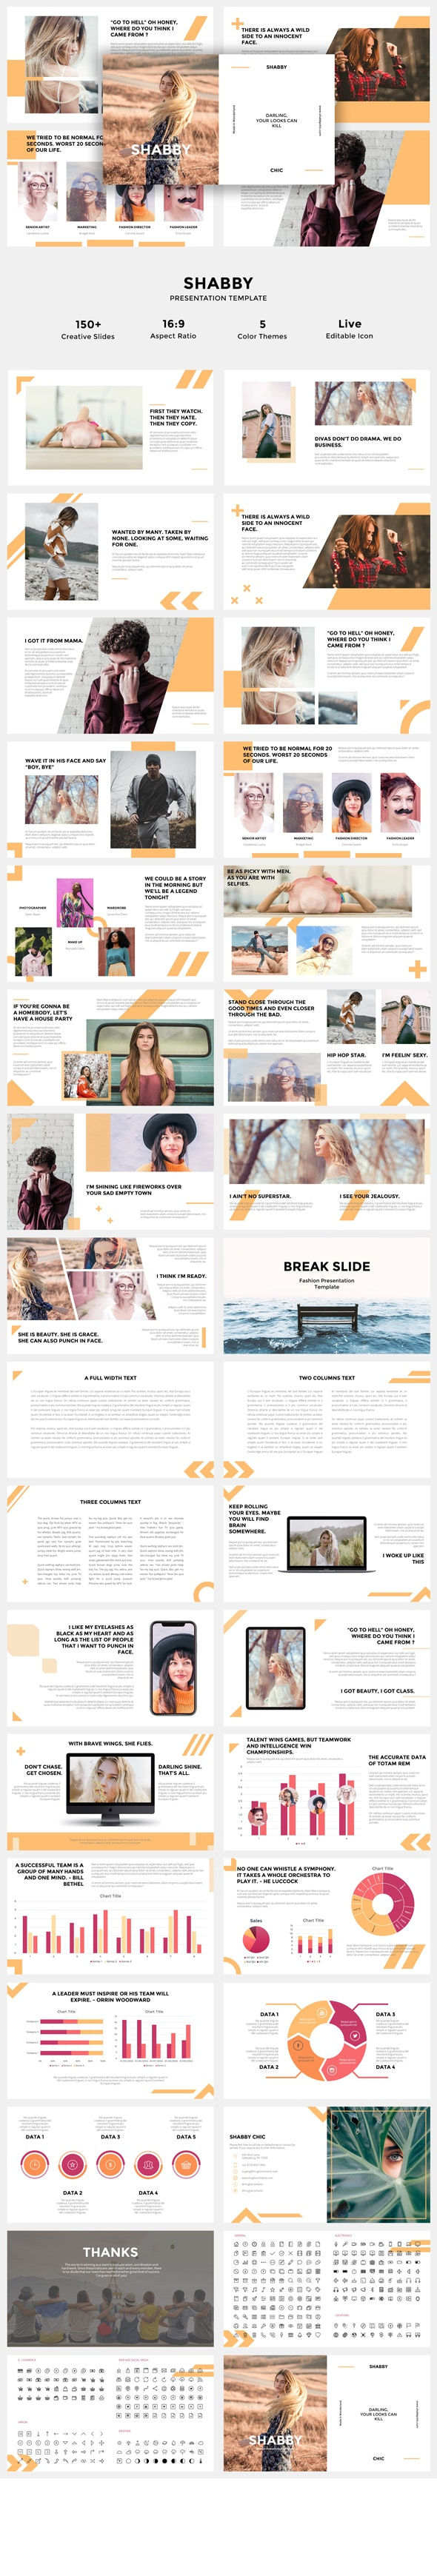 Shabby - Google Slide Presentation Templates - Google Slides Presentation Templates